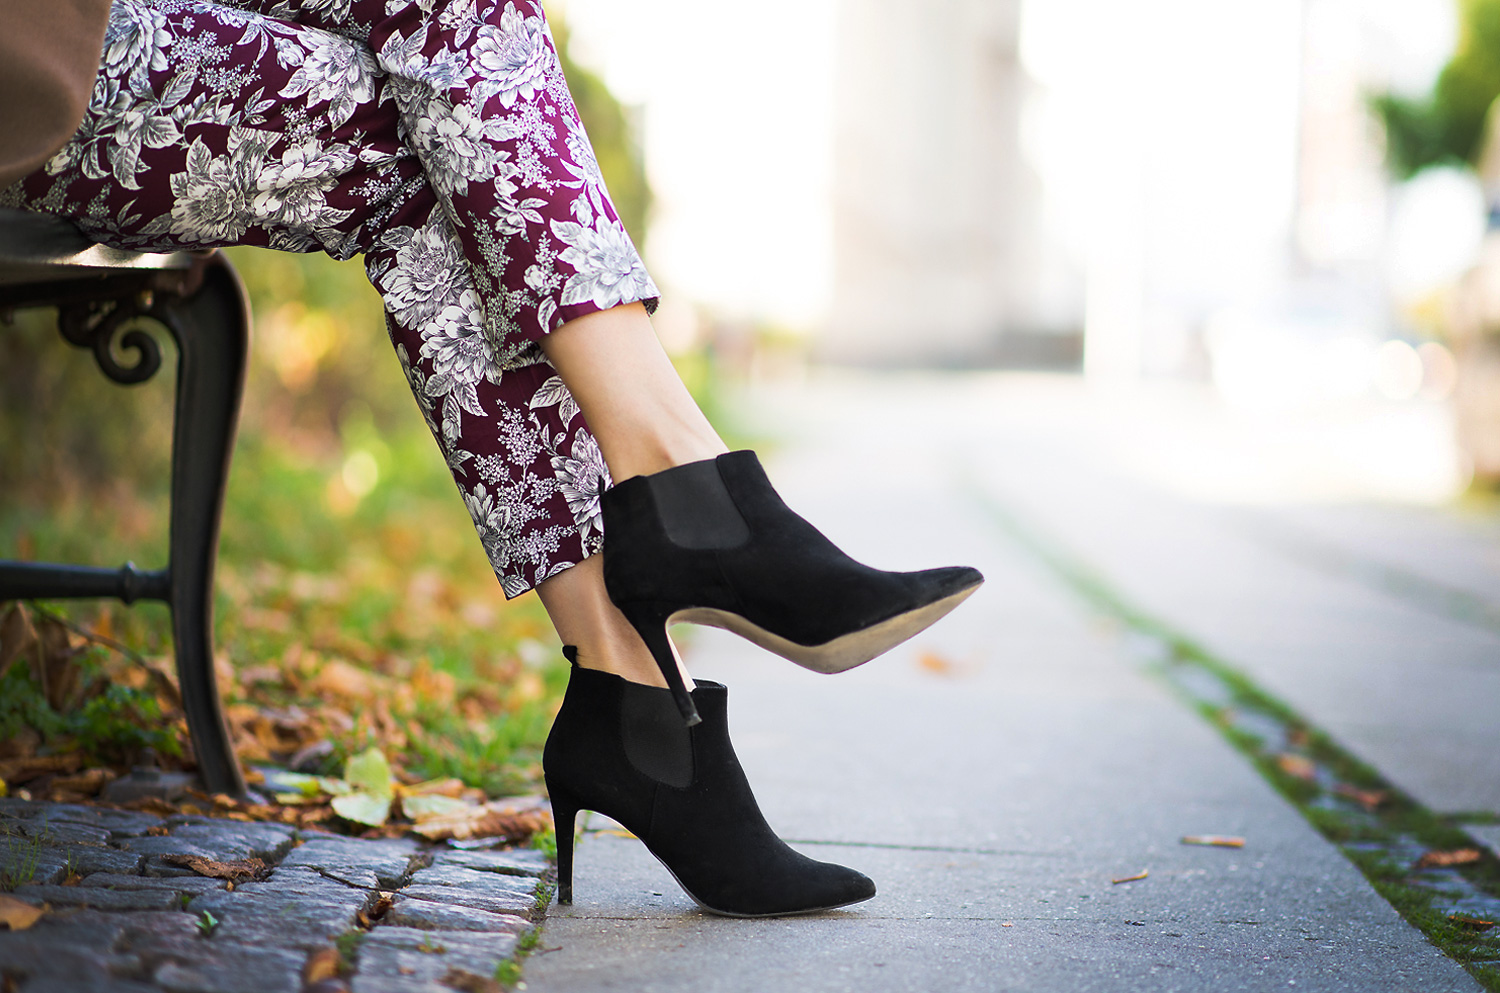 ankleboots@2x